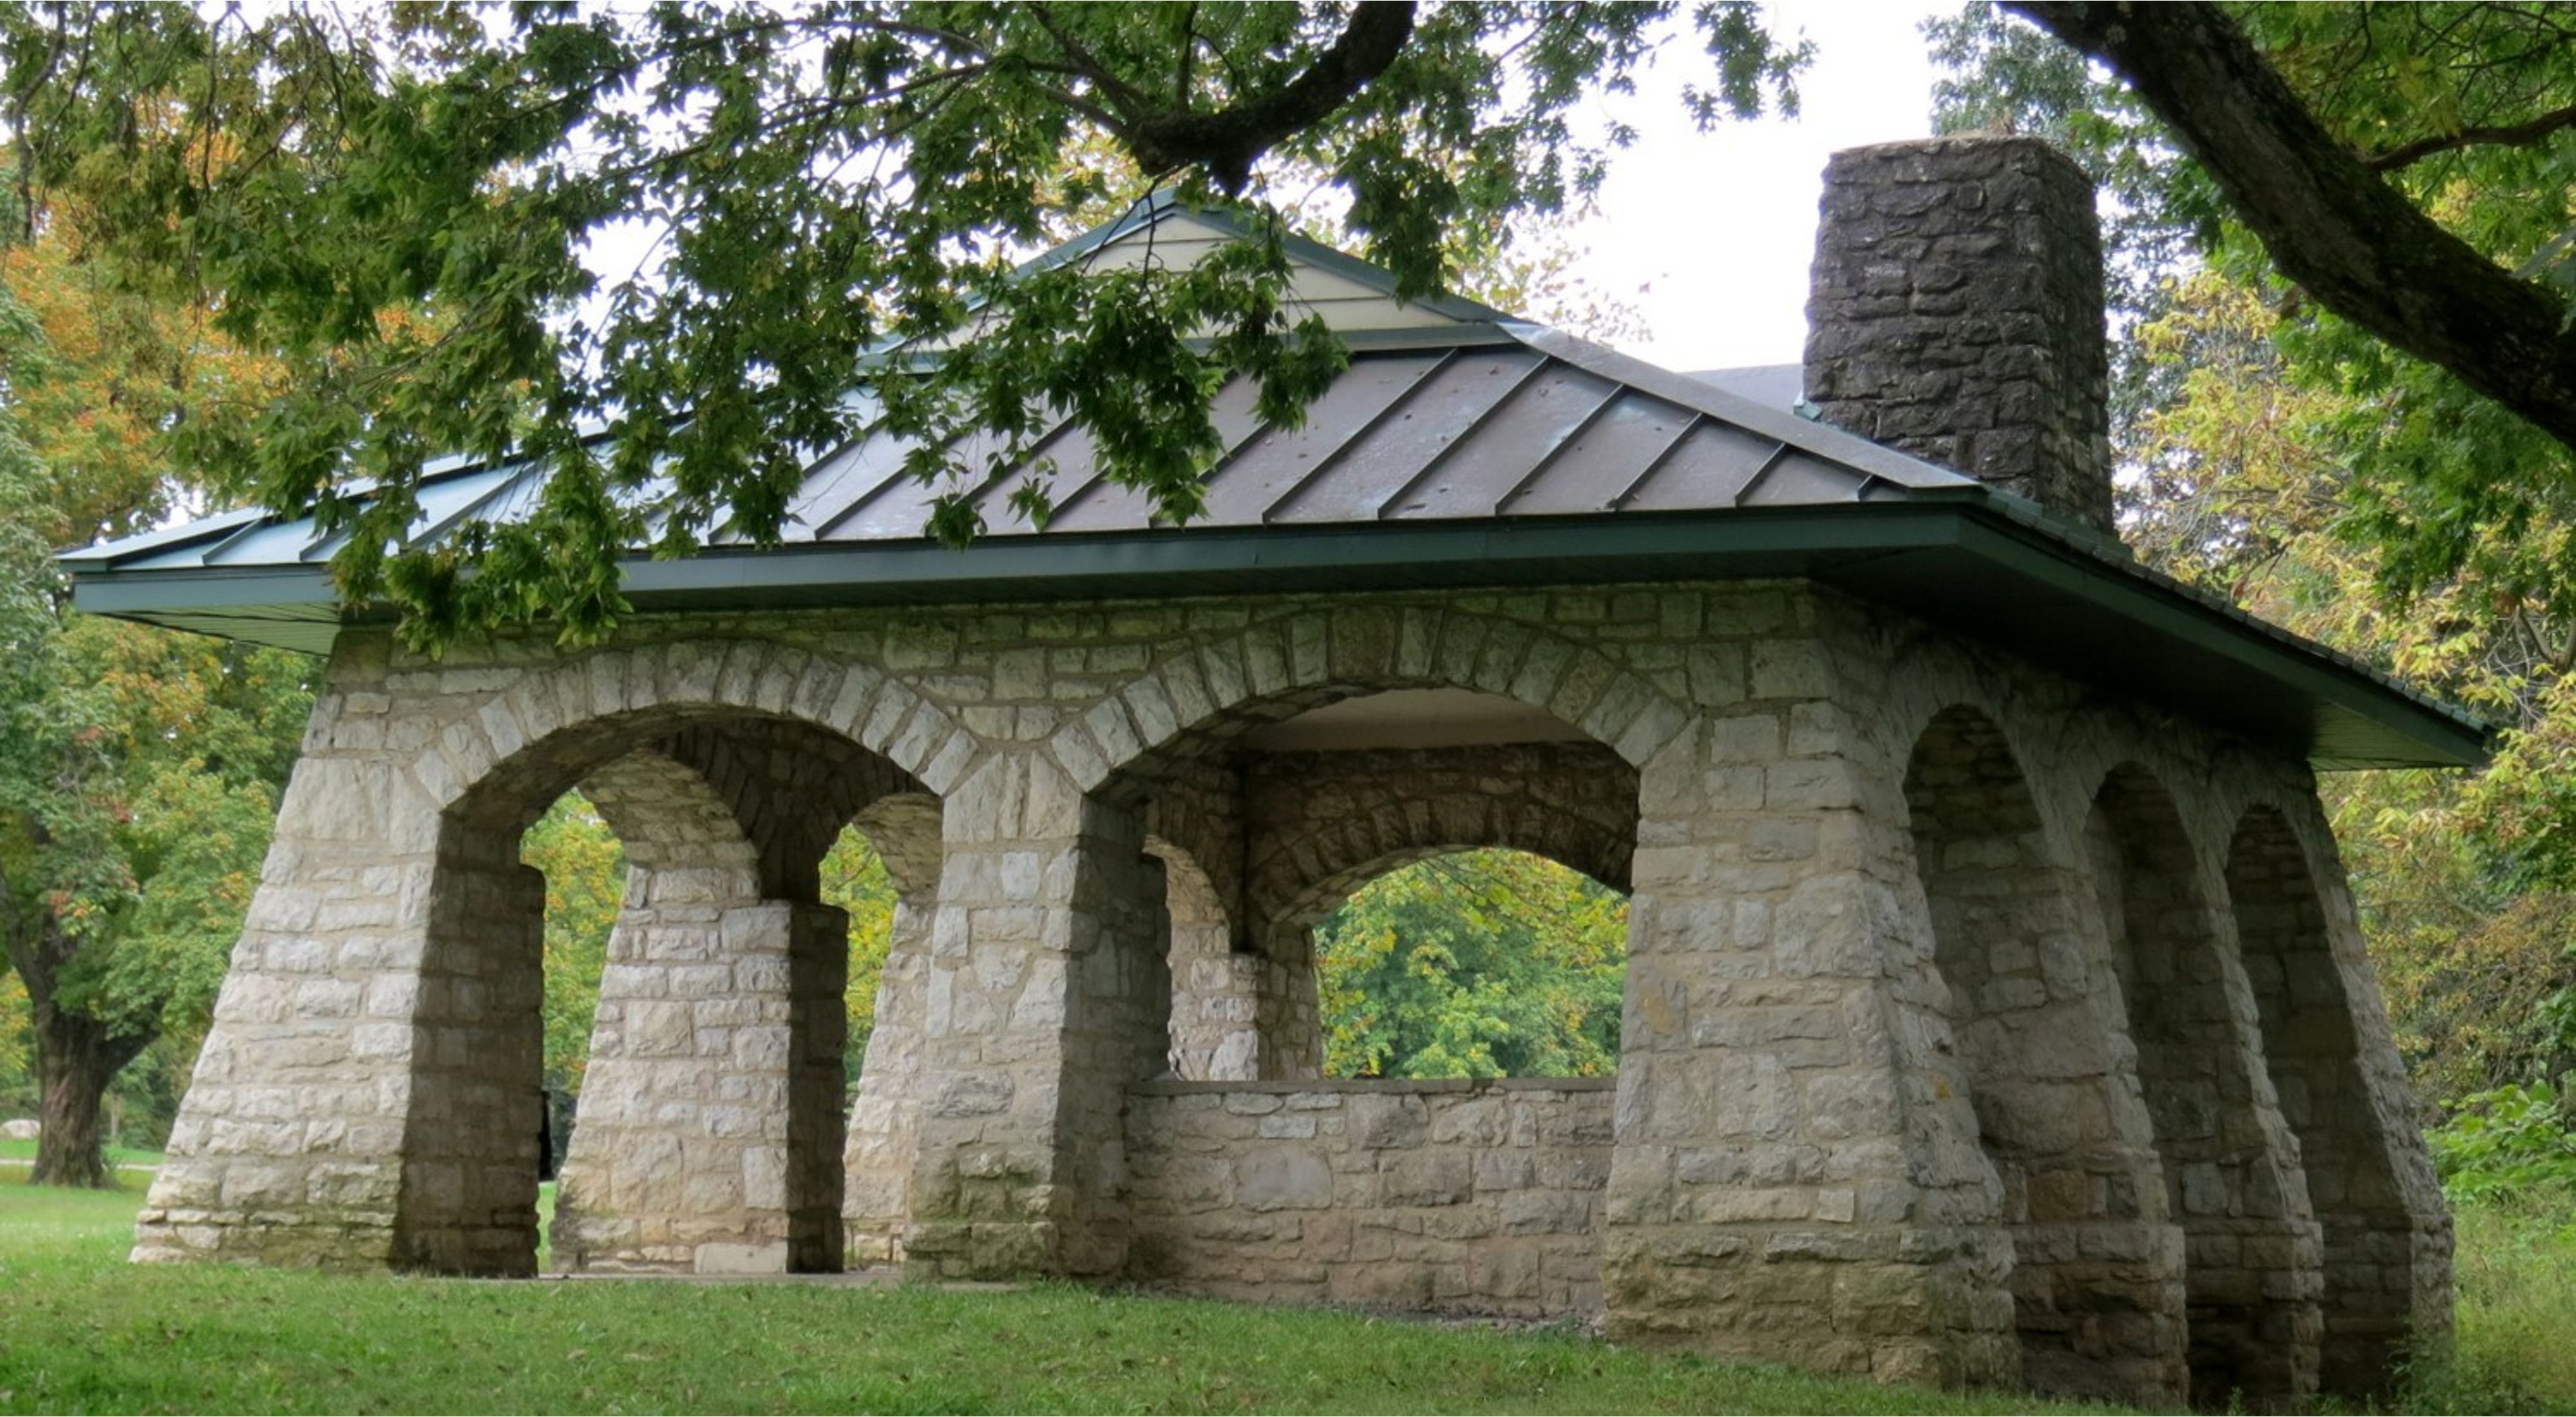 built of Columbus Limestone at Griggs Park on the Scioto river.